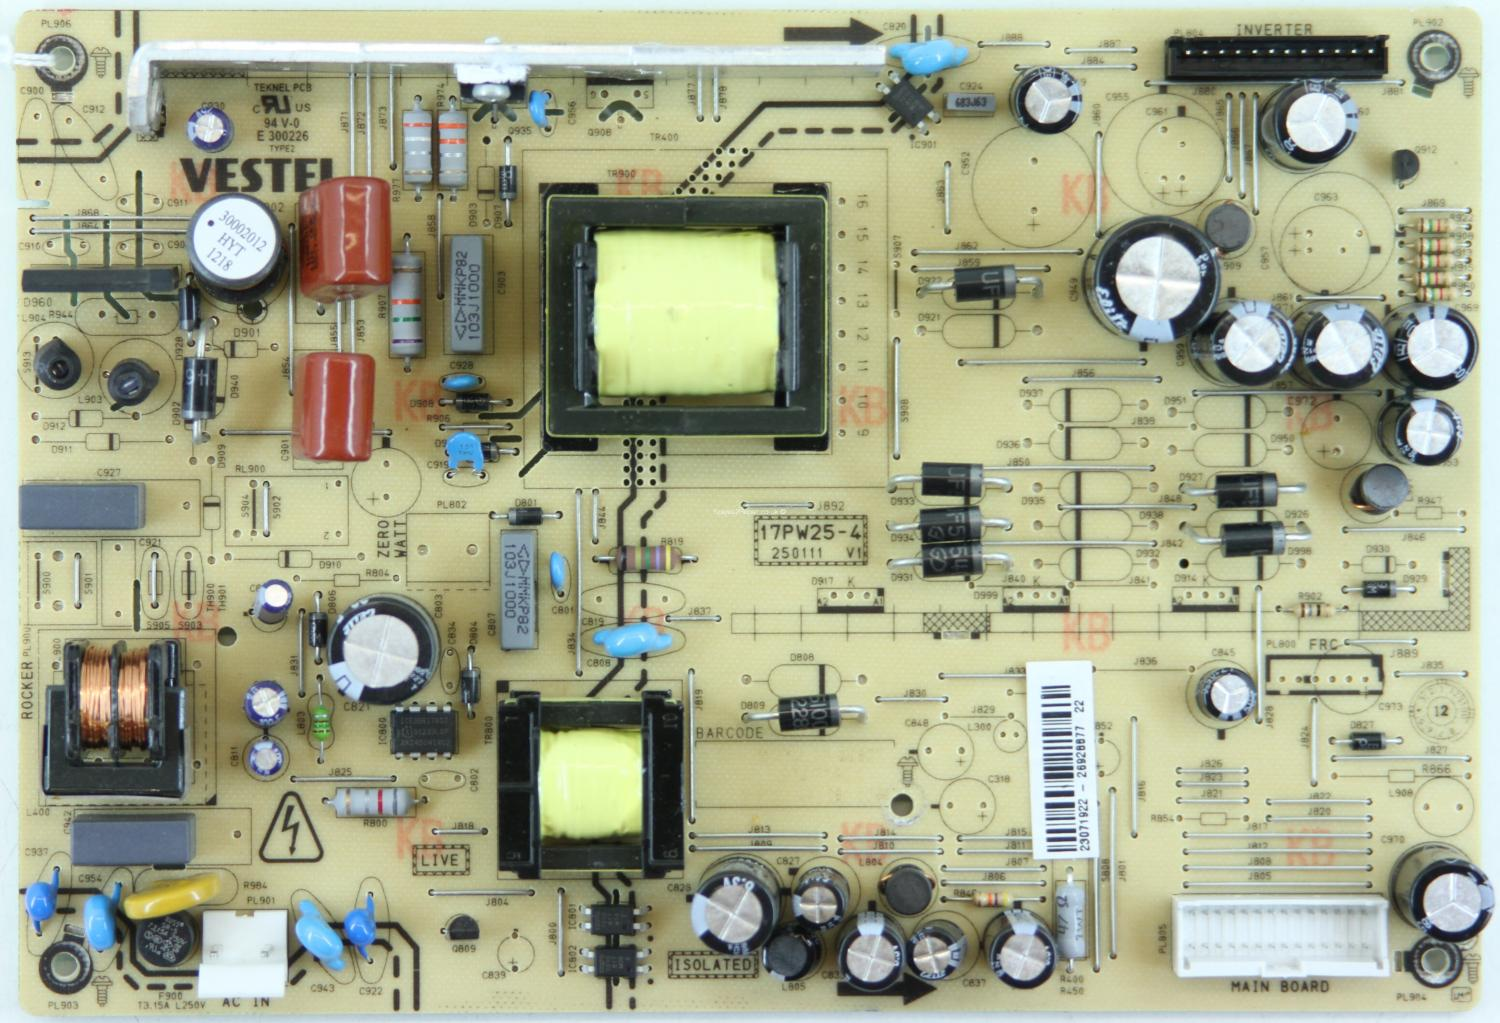 Celcus LCD325913HD - PSU - 17PW25-4 - 250111 - V1 - 23071922